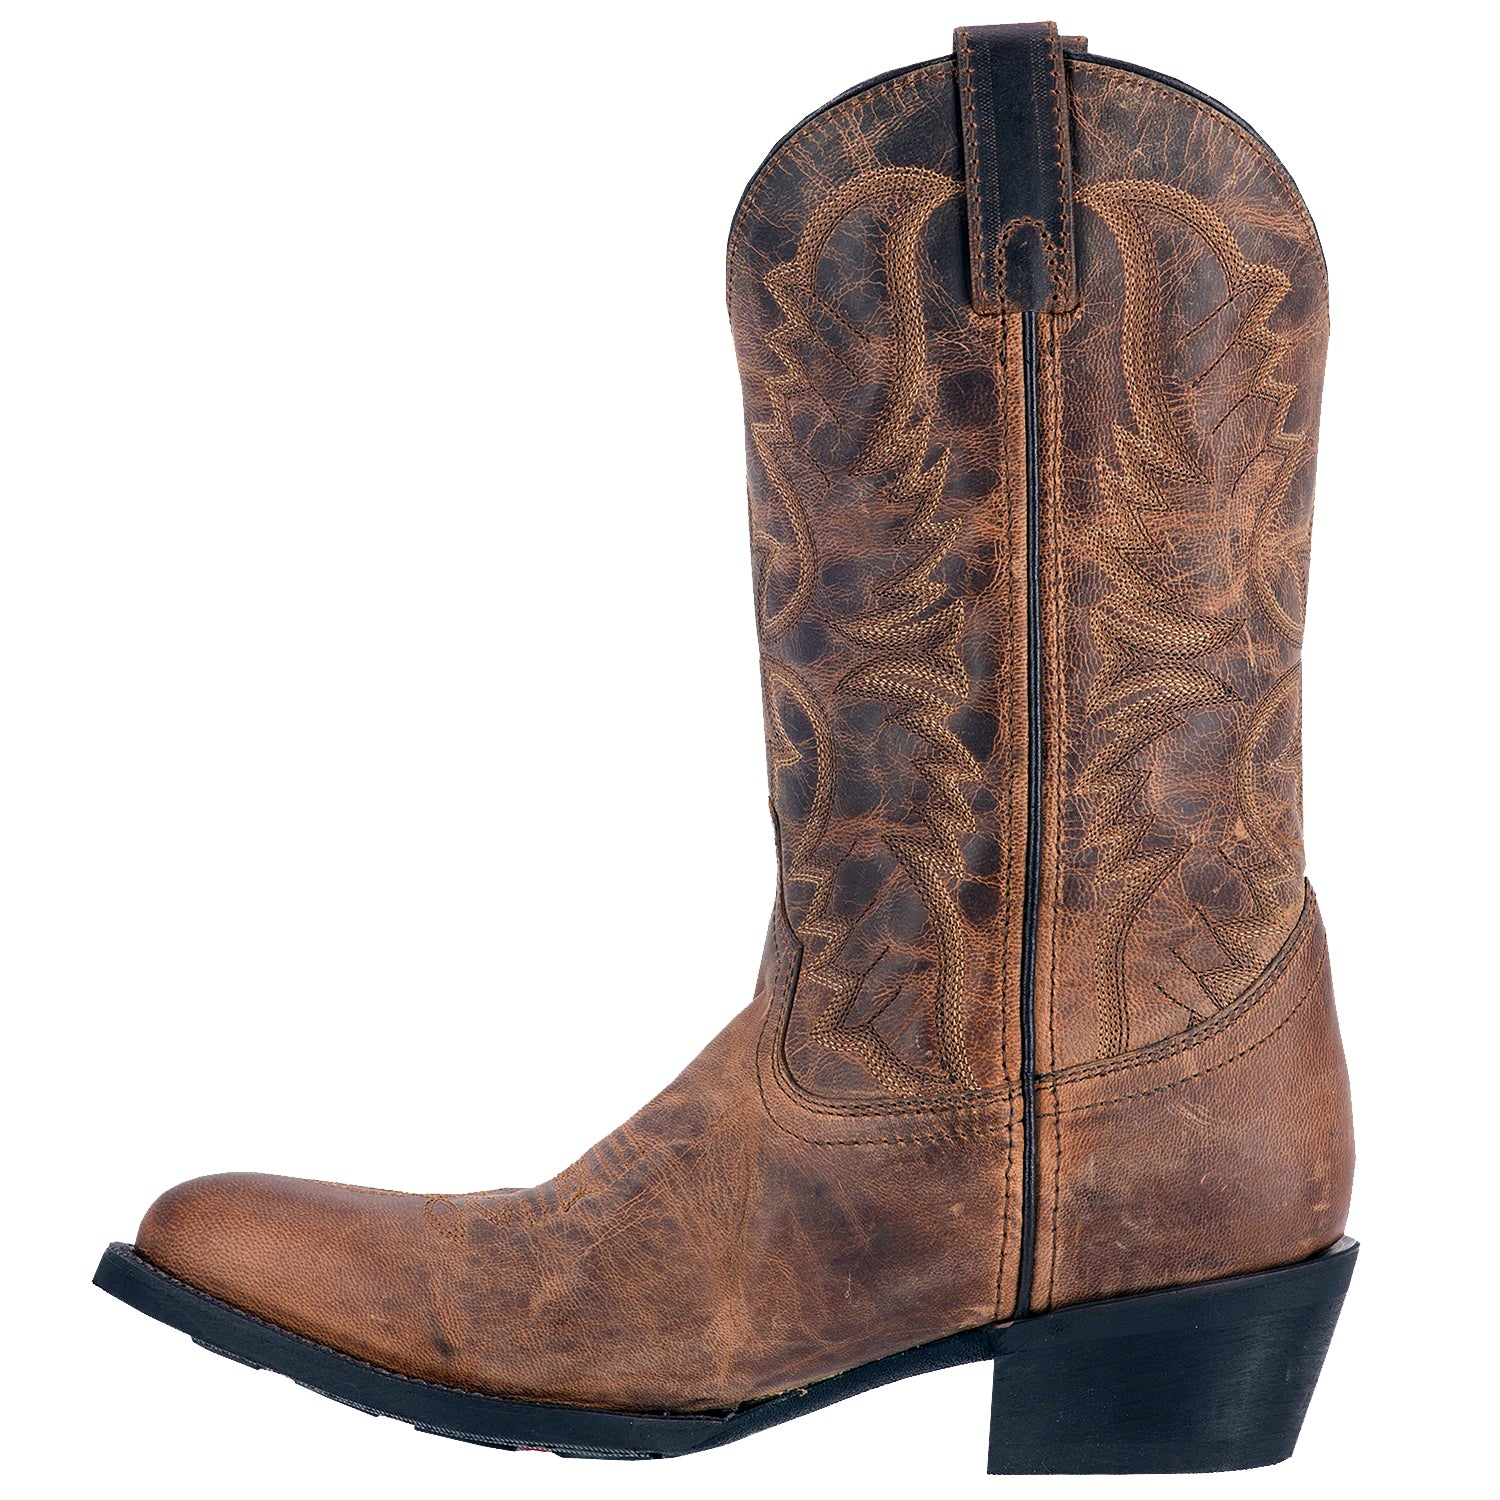 BIRCHWOOD LEATHER BOOT 4410063814698